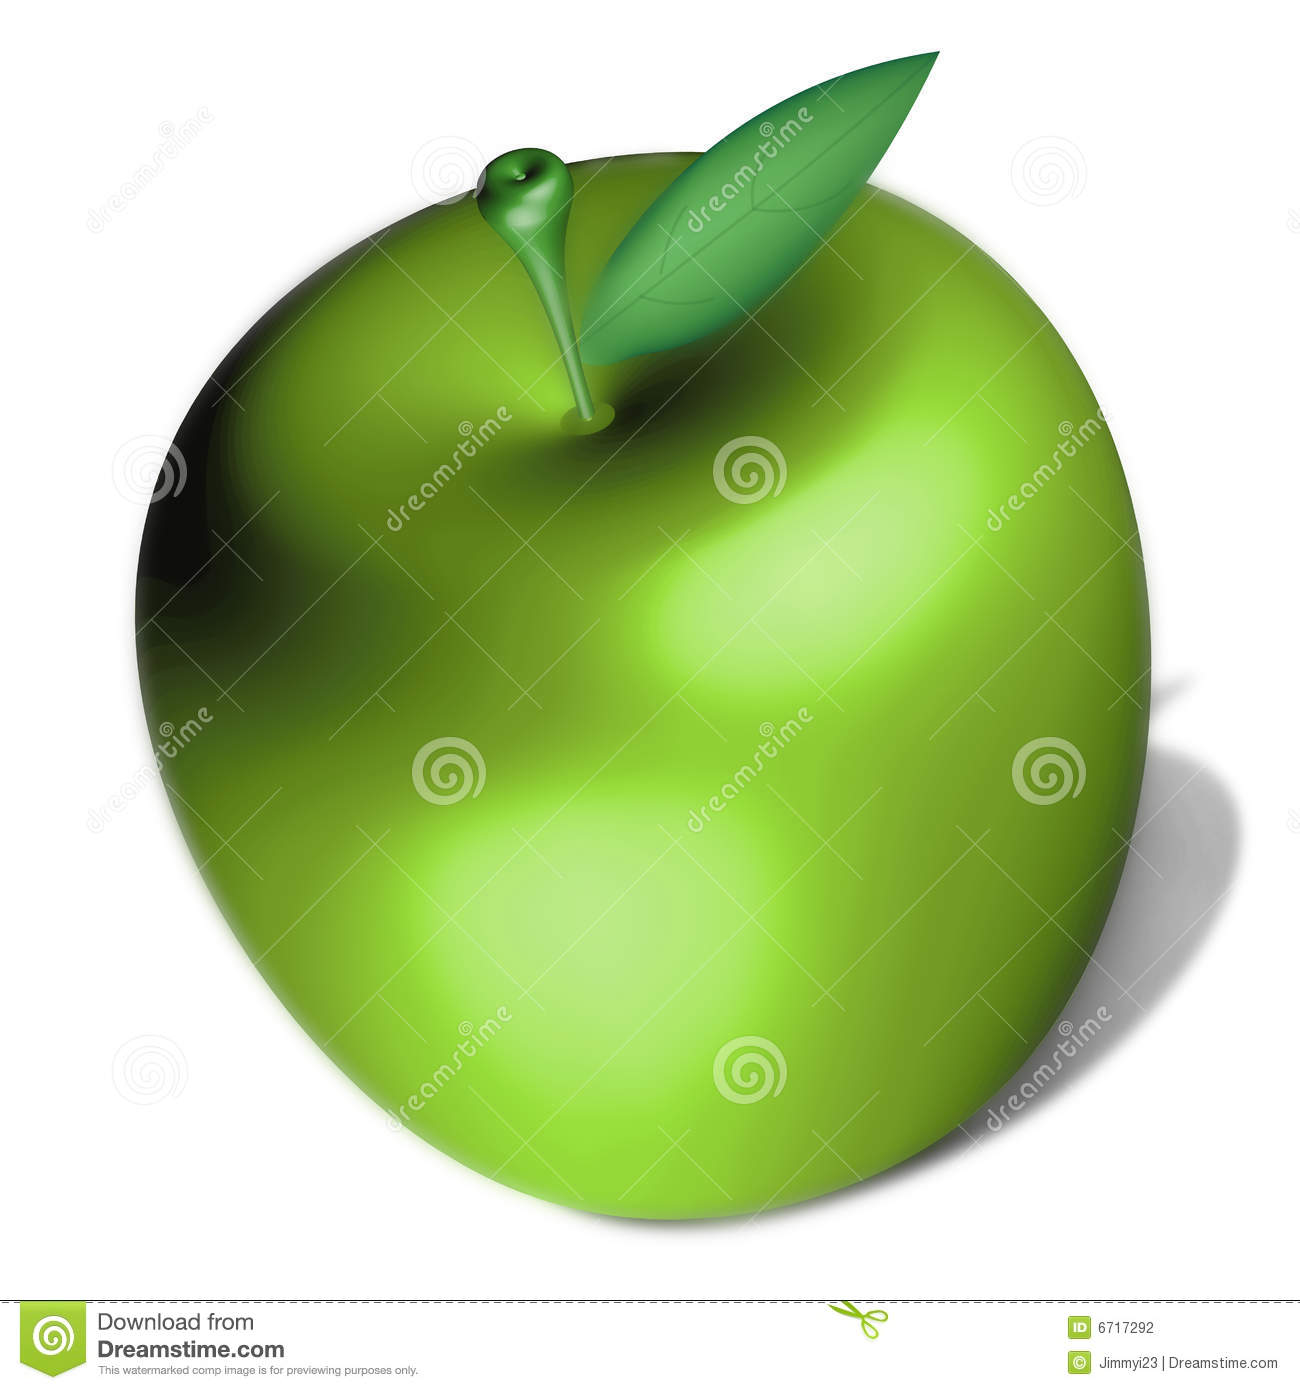 delicious green apple illustration - photo #2